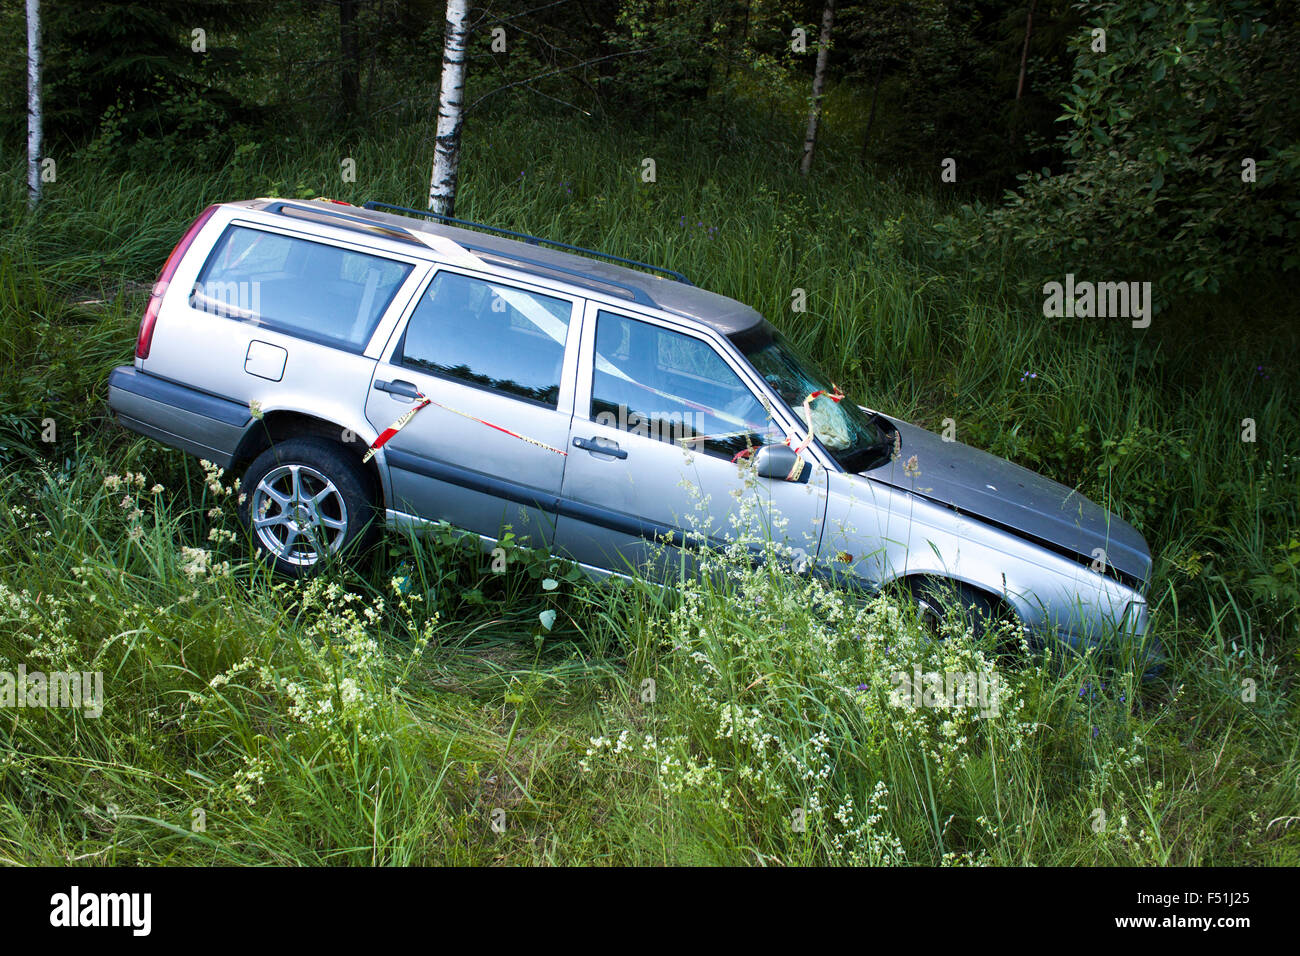 A crashed car on the side of the road Stock Photo: 89161245 - Alamy